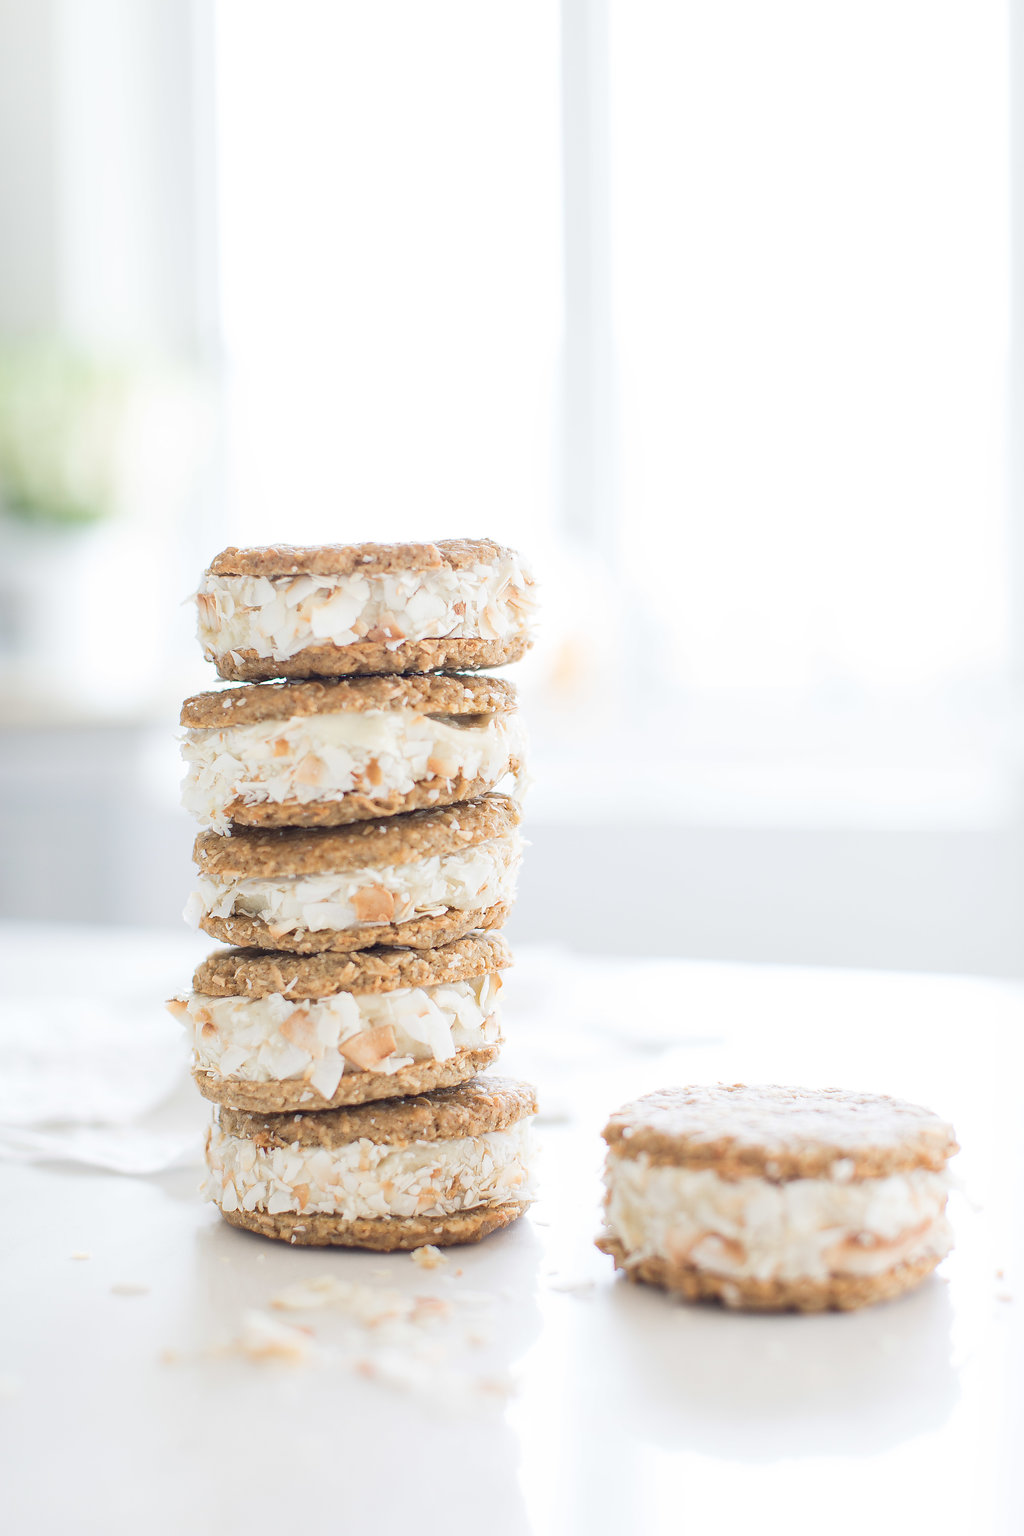 Tropical Nice Cream (vegan) sandwiches using Almond Breeze almond beverage, rolled in toasted flaked coconut and perfect for a healthy summer treat!